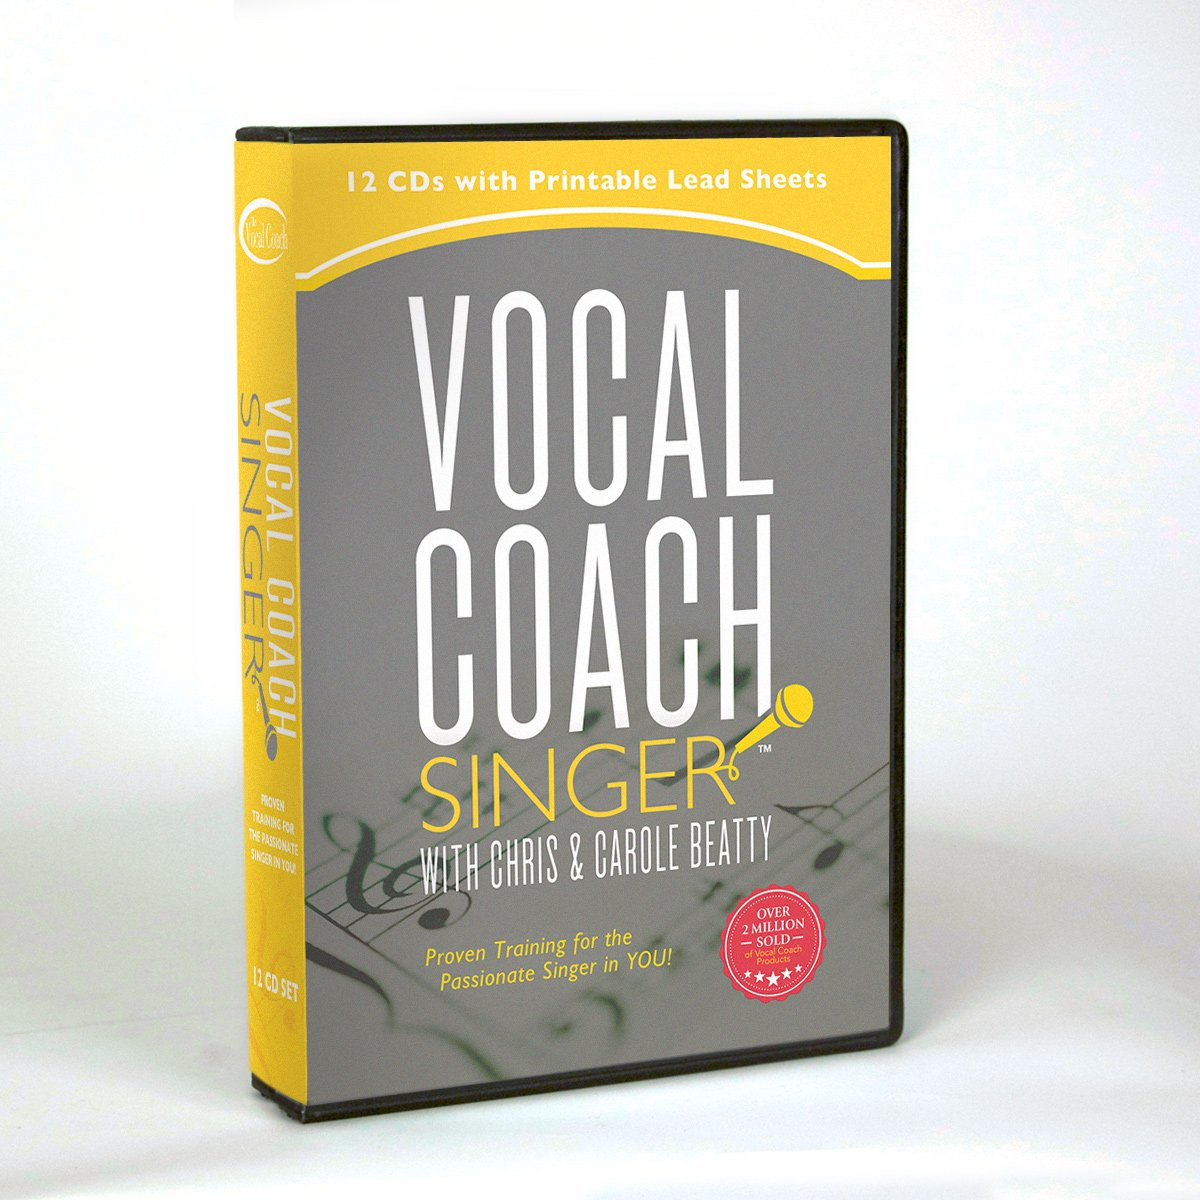 Chris and Carole Beatty - Vocal Coach Singer - Amazon com Music